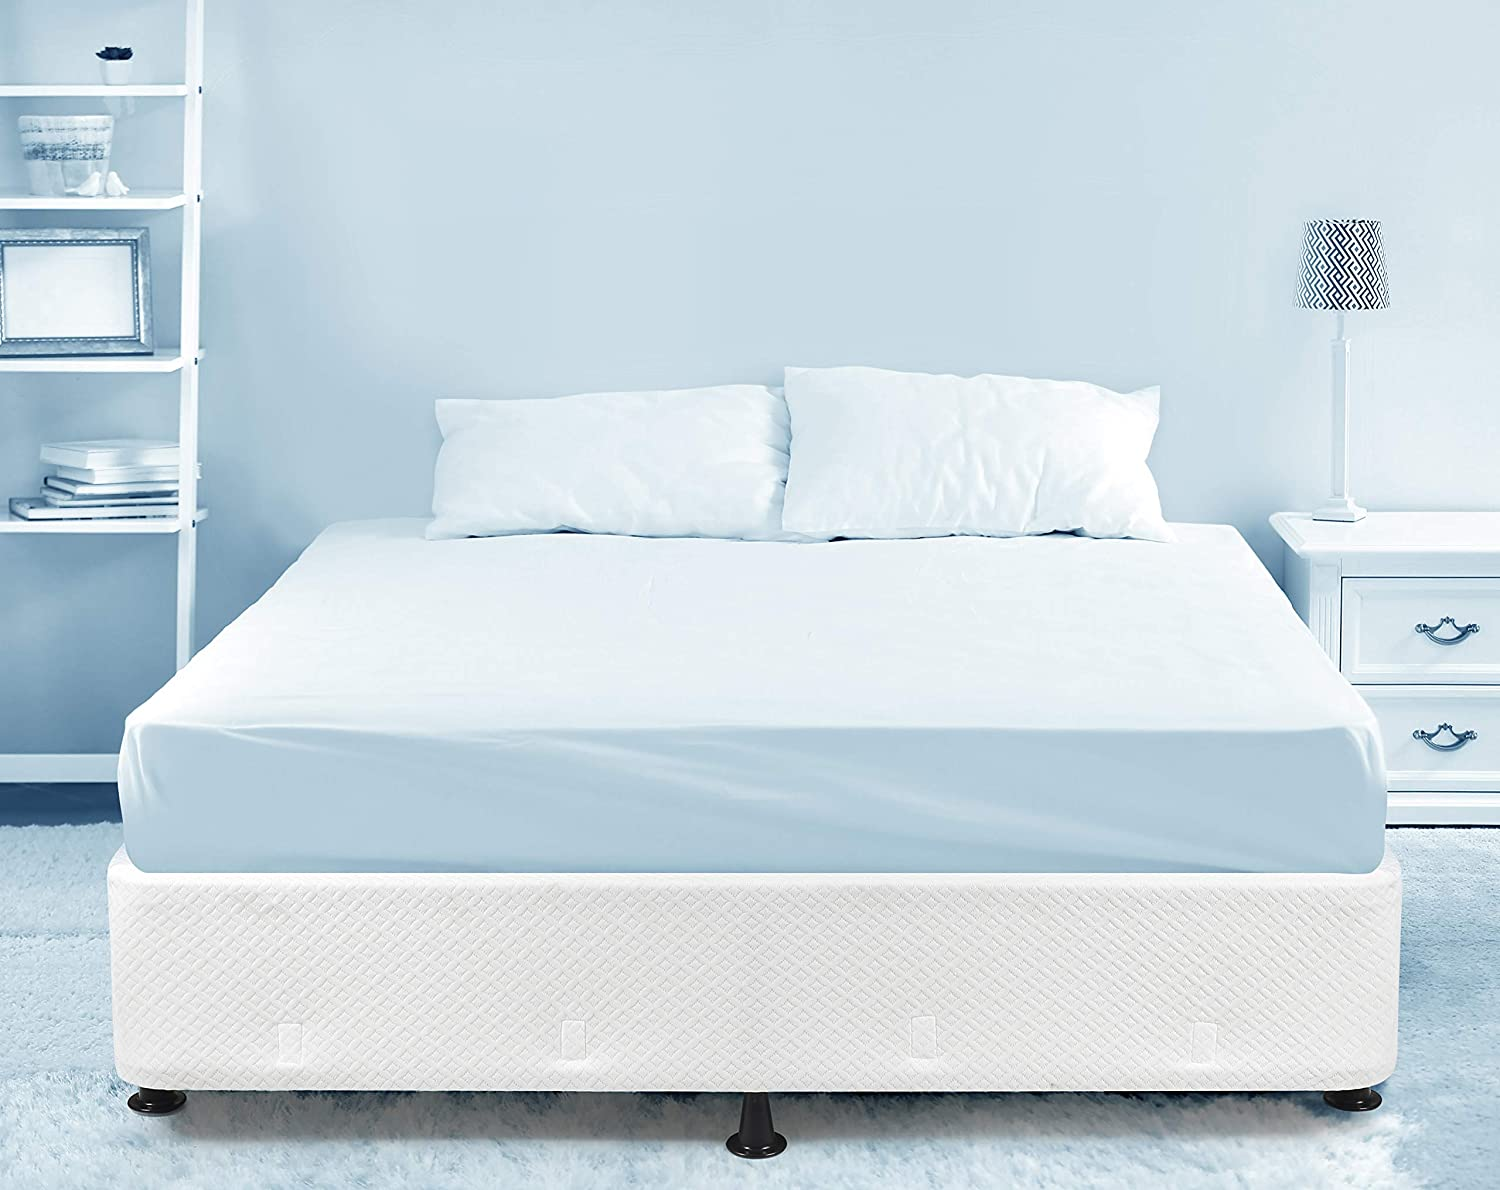 Milliard Box Spring Frame Queen Size High Profile Mattress Foundation Metal Structure, Use with or Without Included Legs or Directly on Bed Frame – Queen